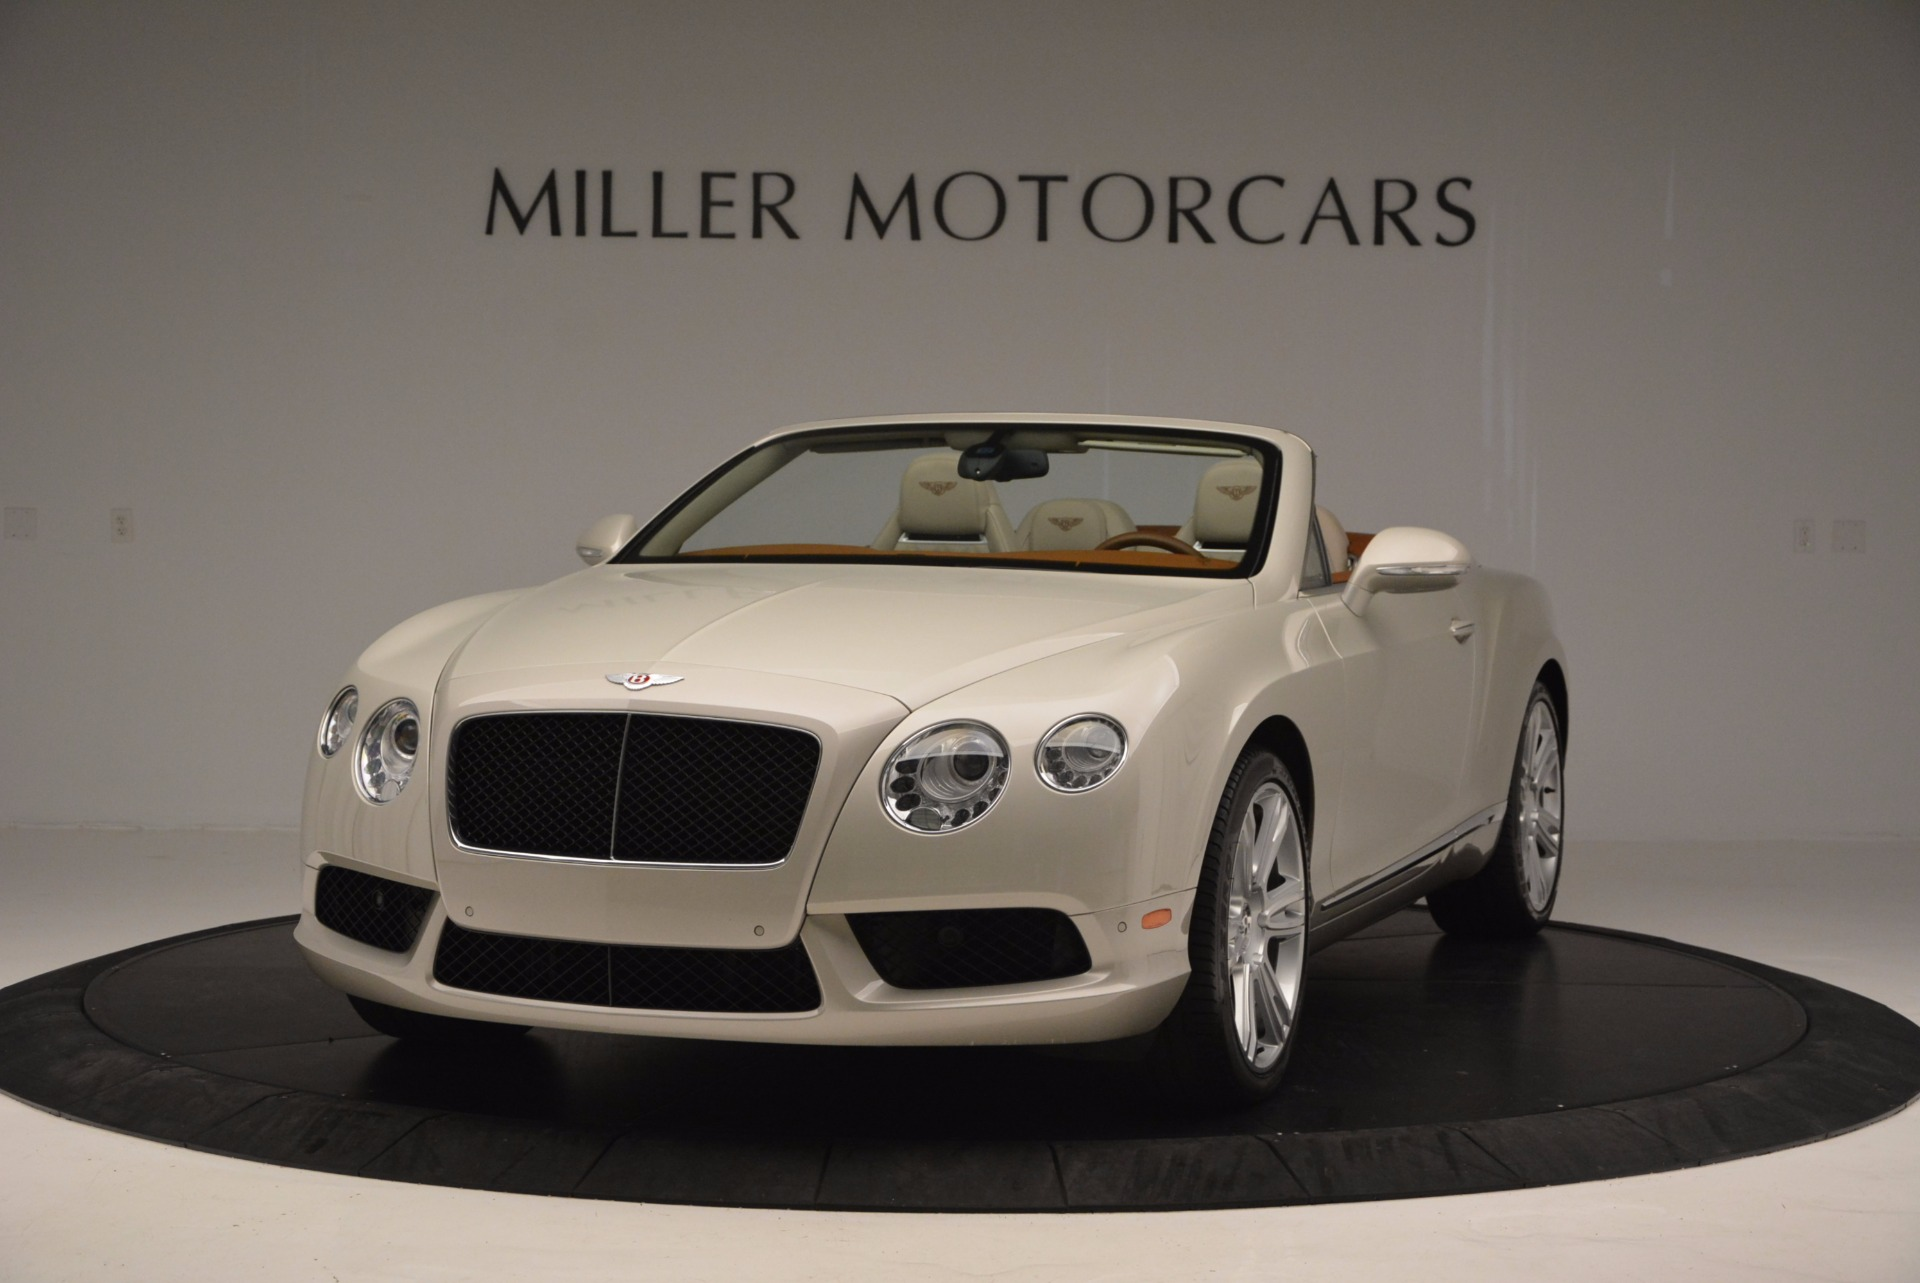 Used 2013 Bentley Continental GTC V8 for sale Sold at Bugatti of Greenwich in Greenwich CT 06830 1